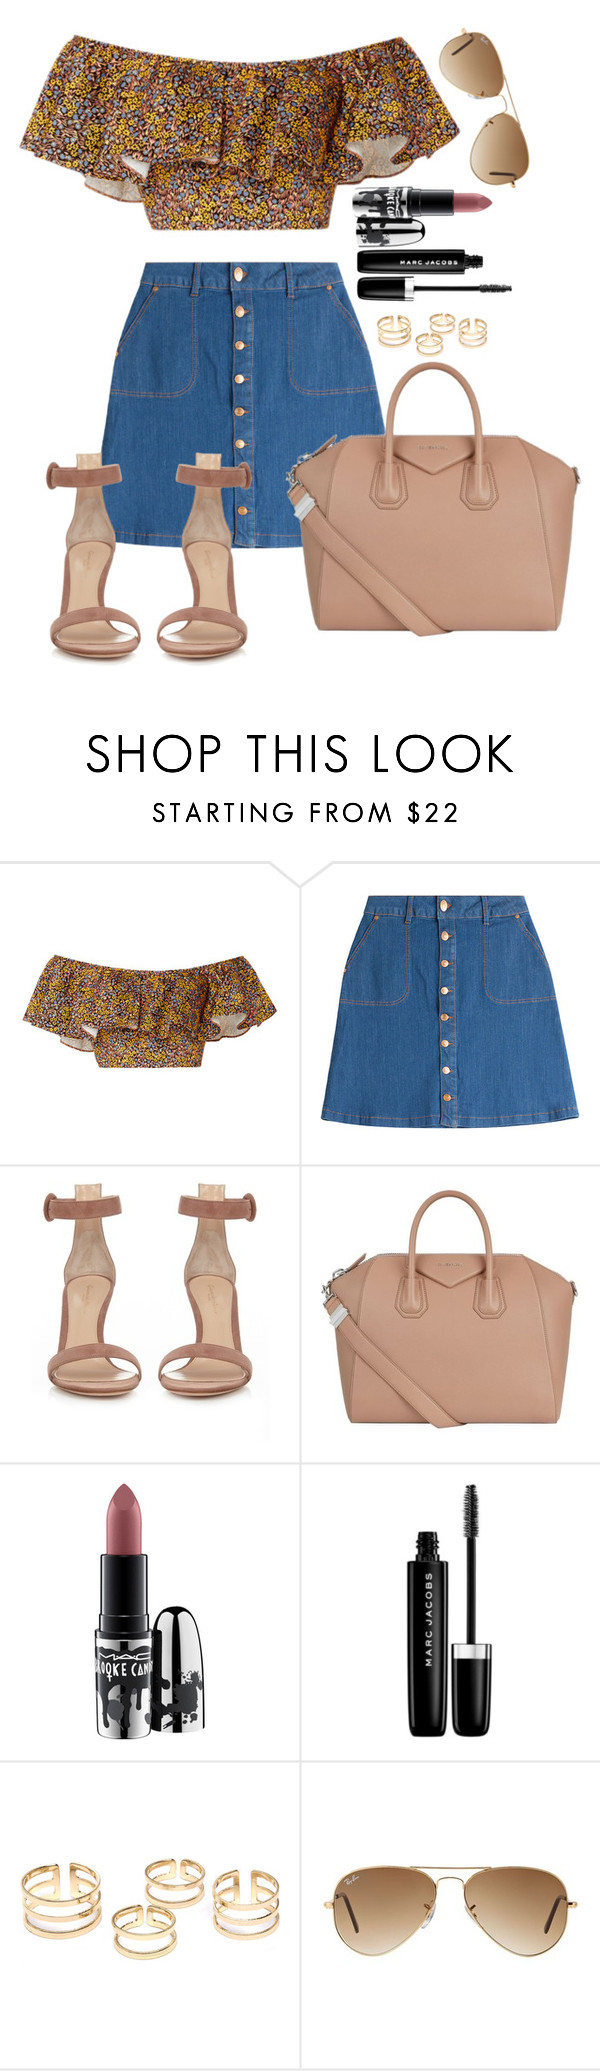 """""""Untitled #1518"""" by fabianarveloc on Polyvore featuring Philosophy di Lorenzo Serafini, HUGO, Gianvito Rossi, Givenchy, MAC Cosmetics, Marc Jacobs and Ray-Ban"""